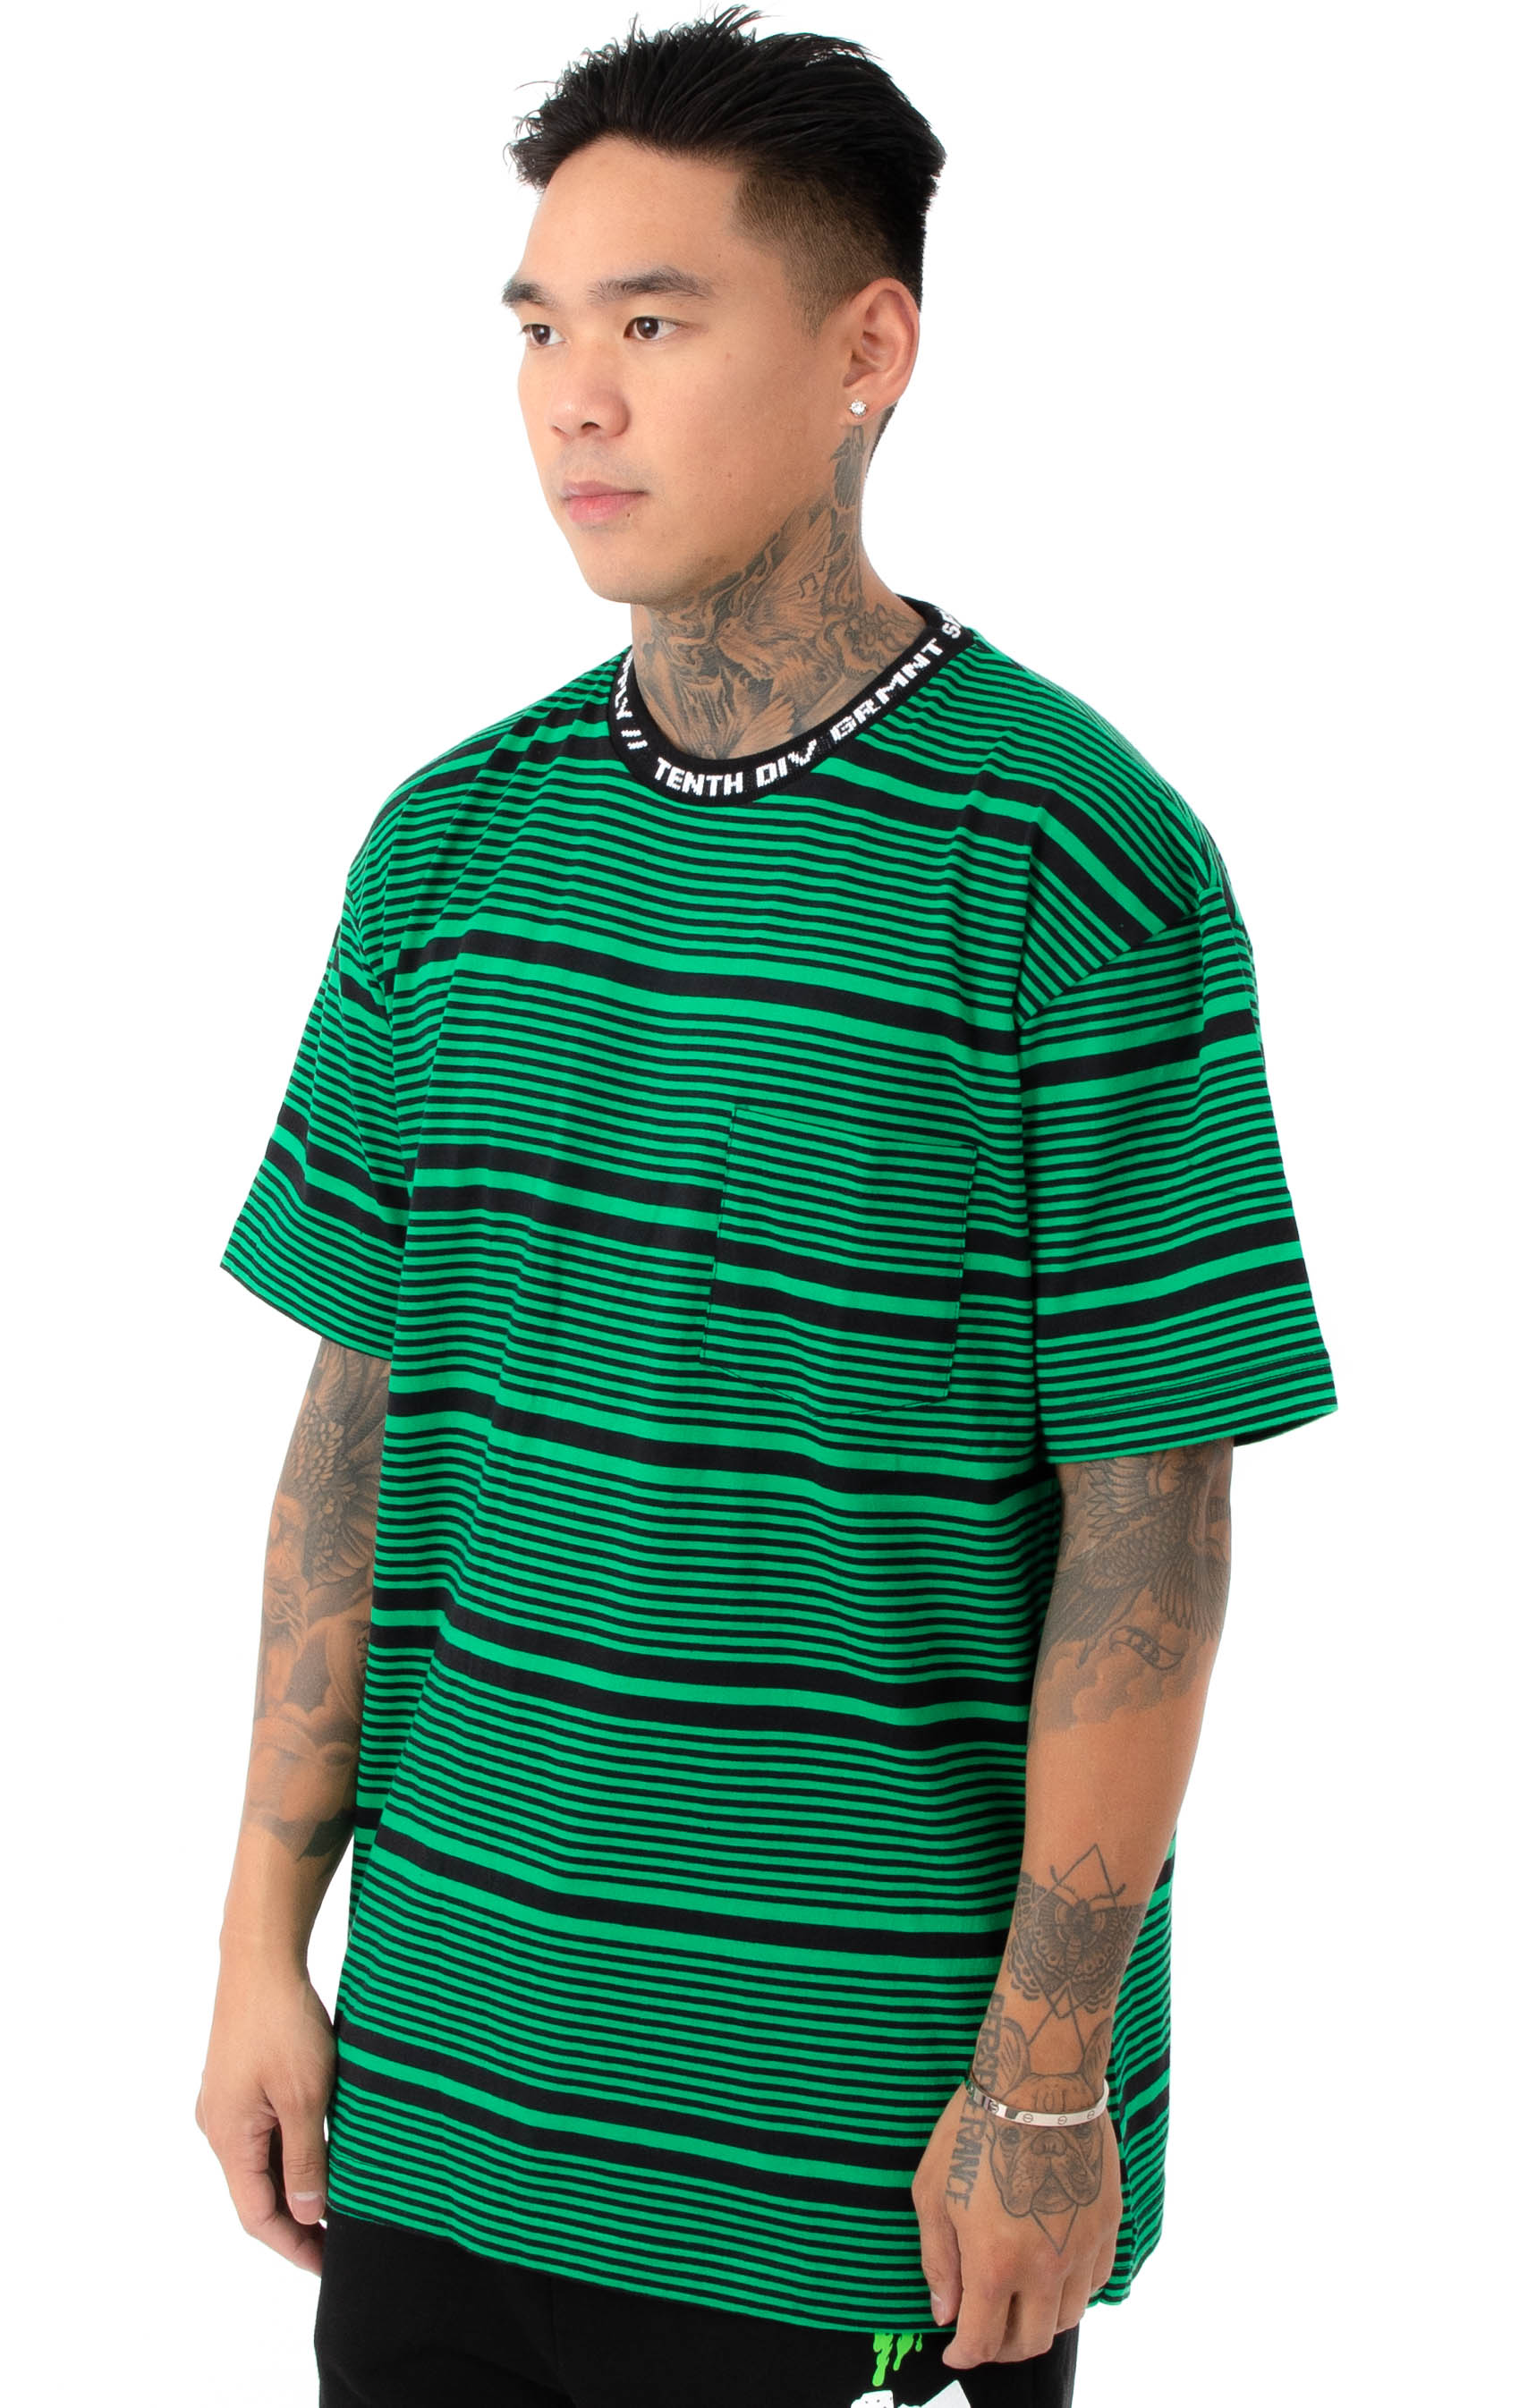 Foreigner Y/D Striped T-Shirt - Green 2